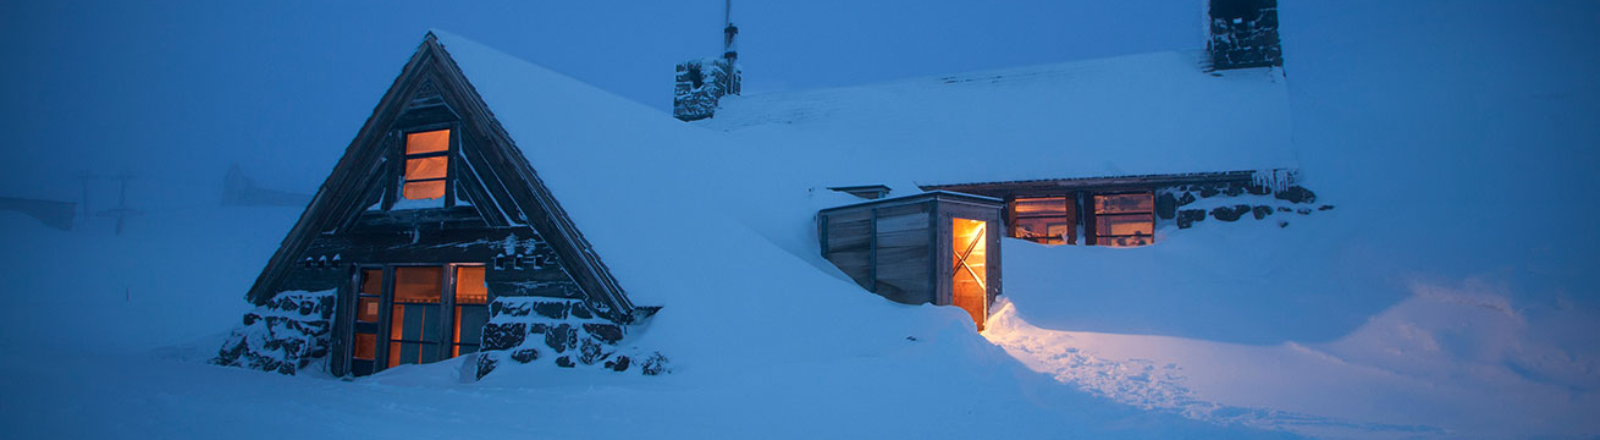 Timberline's Silcox Hut high on Mt. Hood buried in snow halfway up some of its windows seen lit from the interior at night